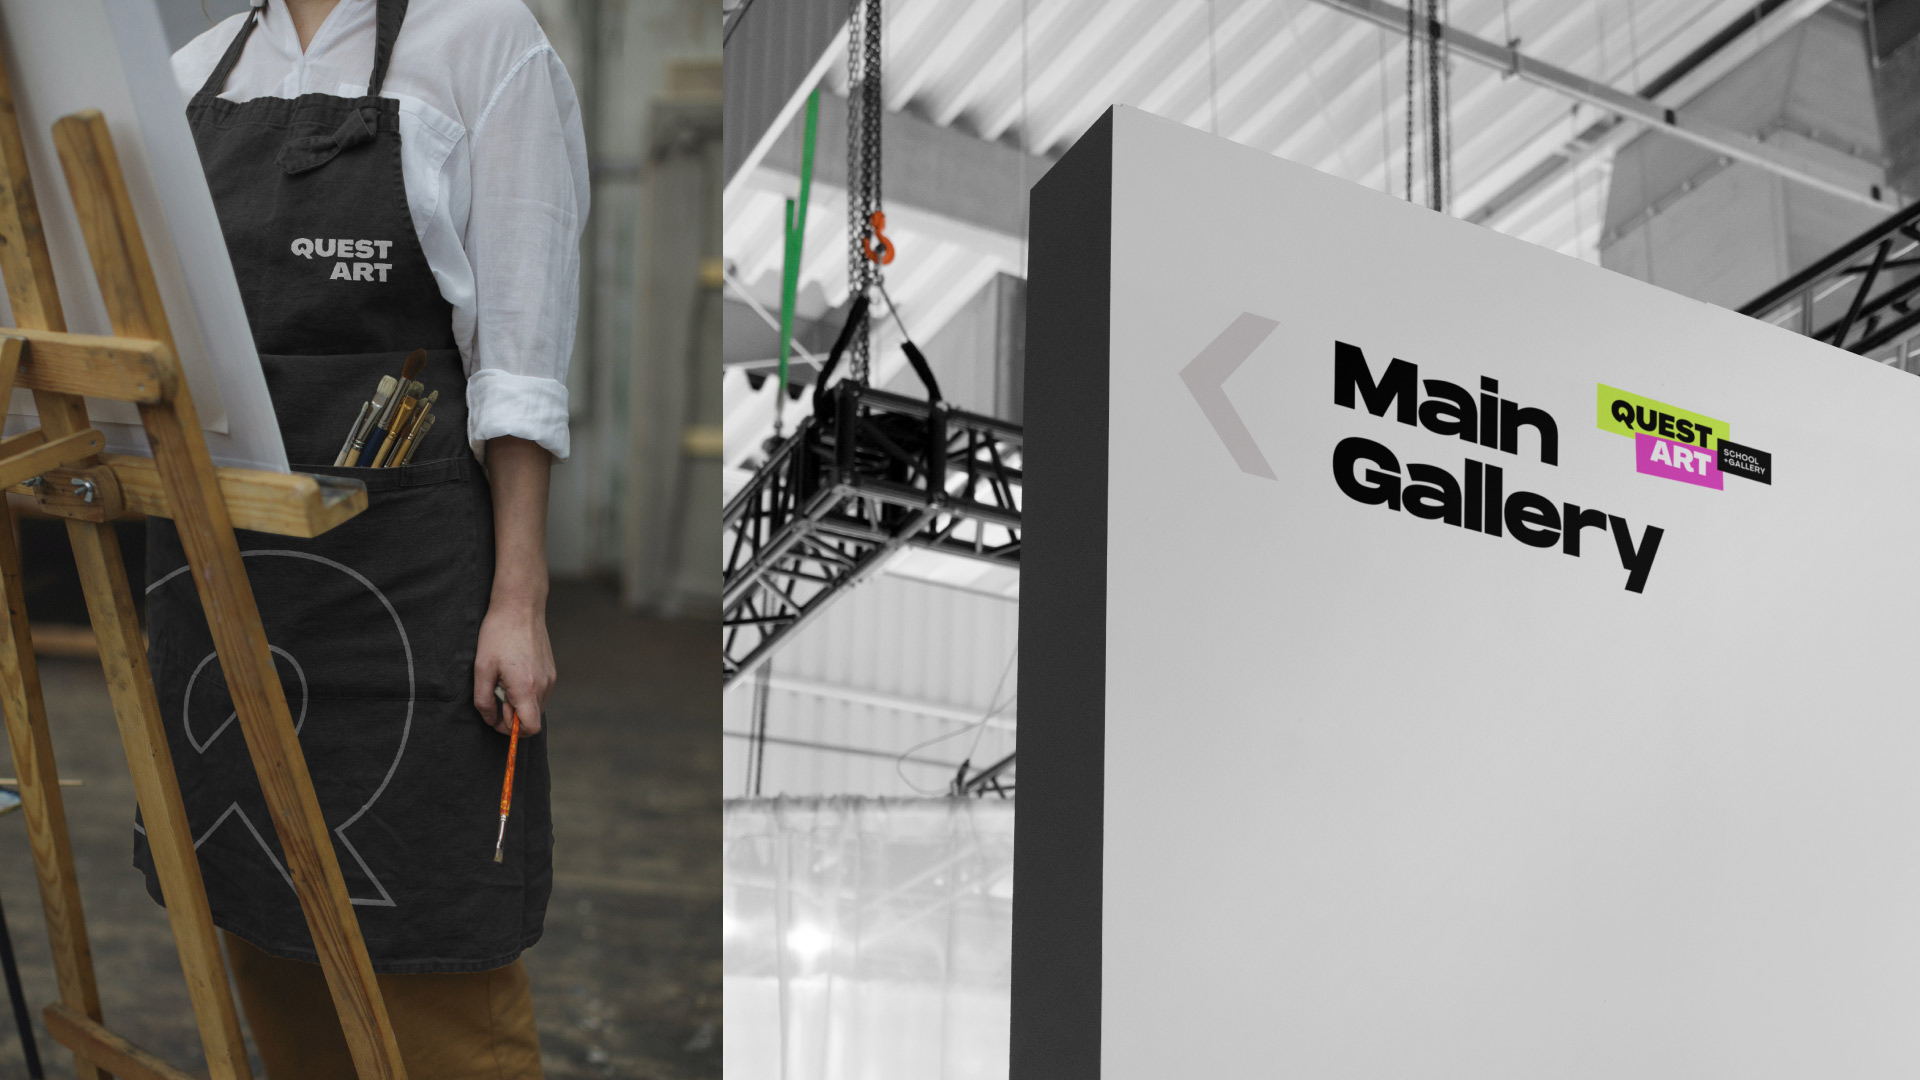 quest art school and gallery painters smock and wayfinding